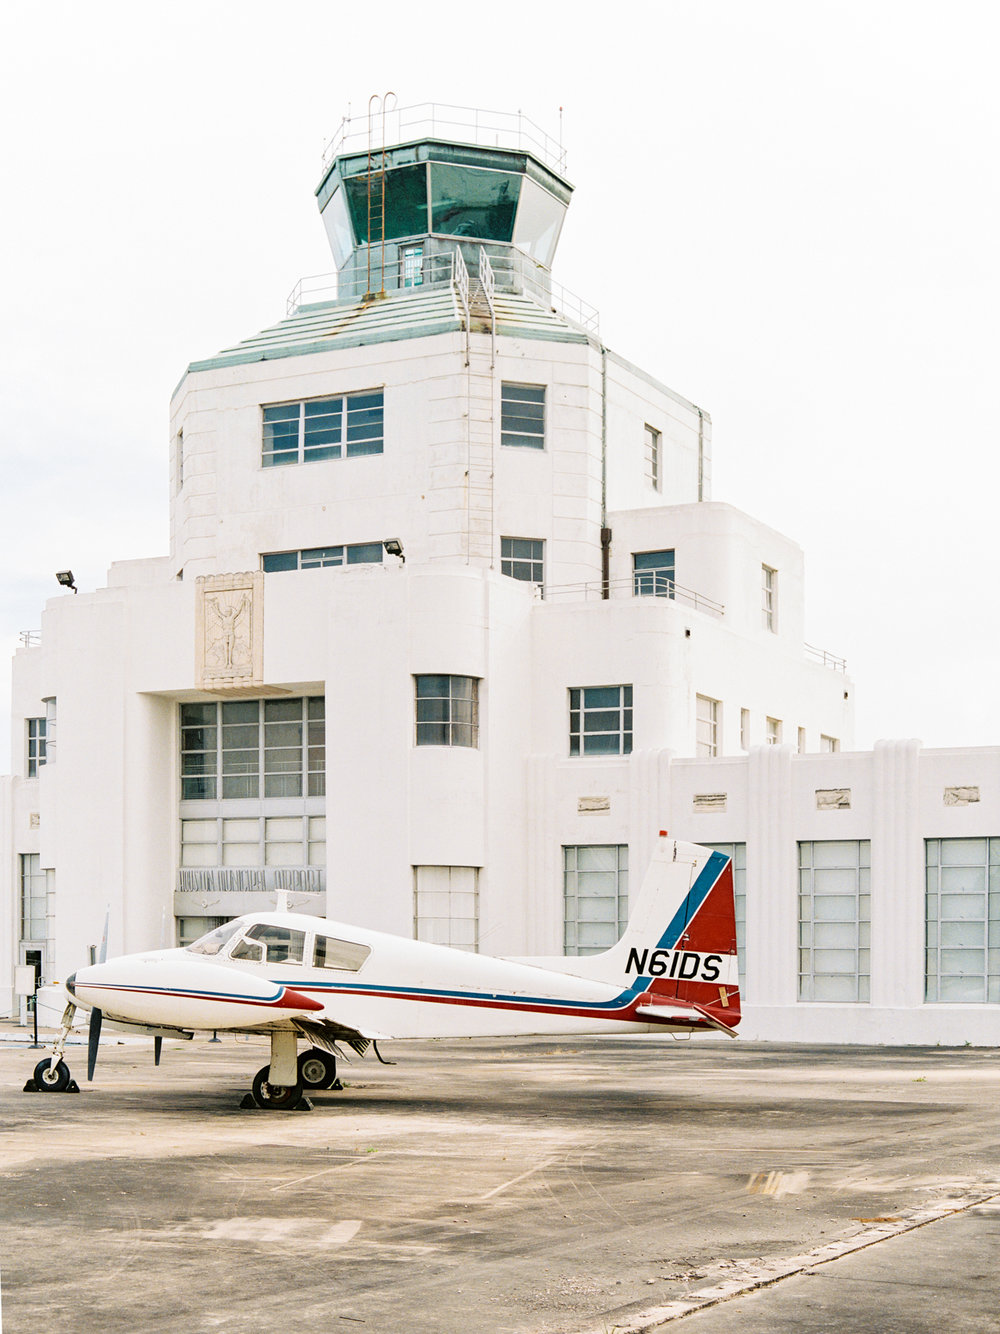 Family Session at Houston Air Terminal Museum, now on Cottage Hill